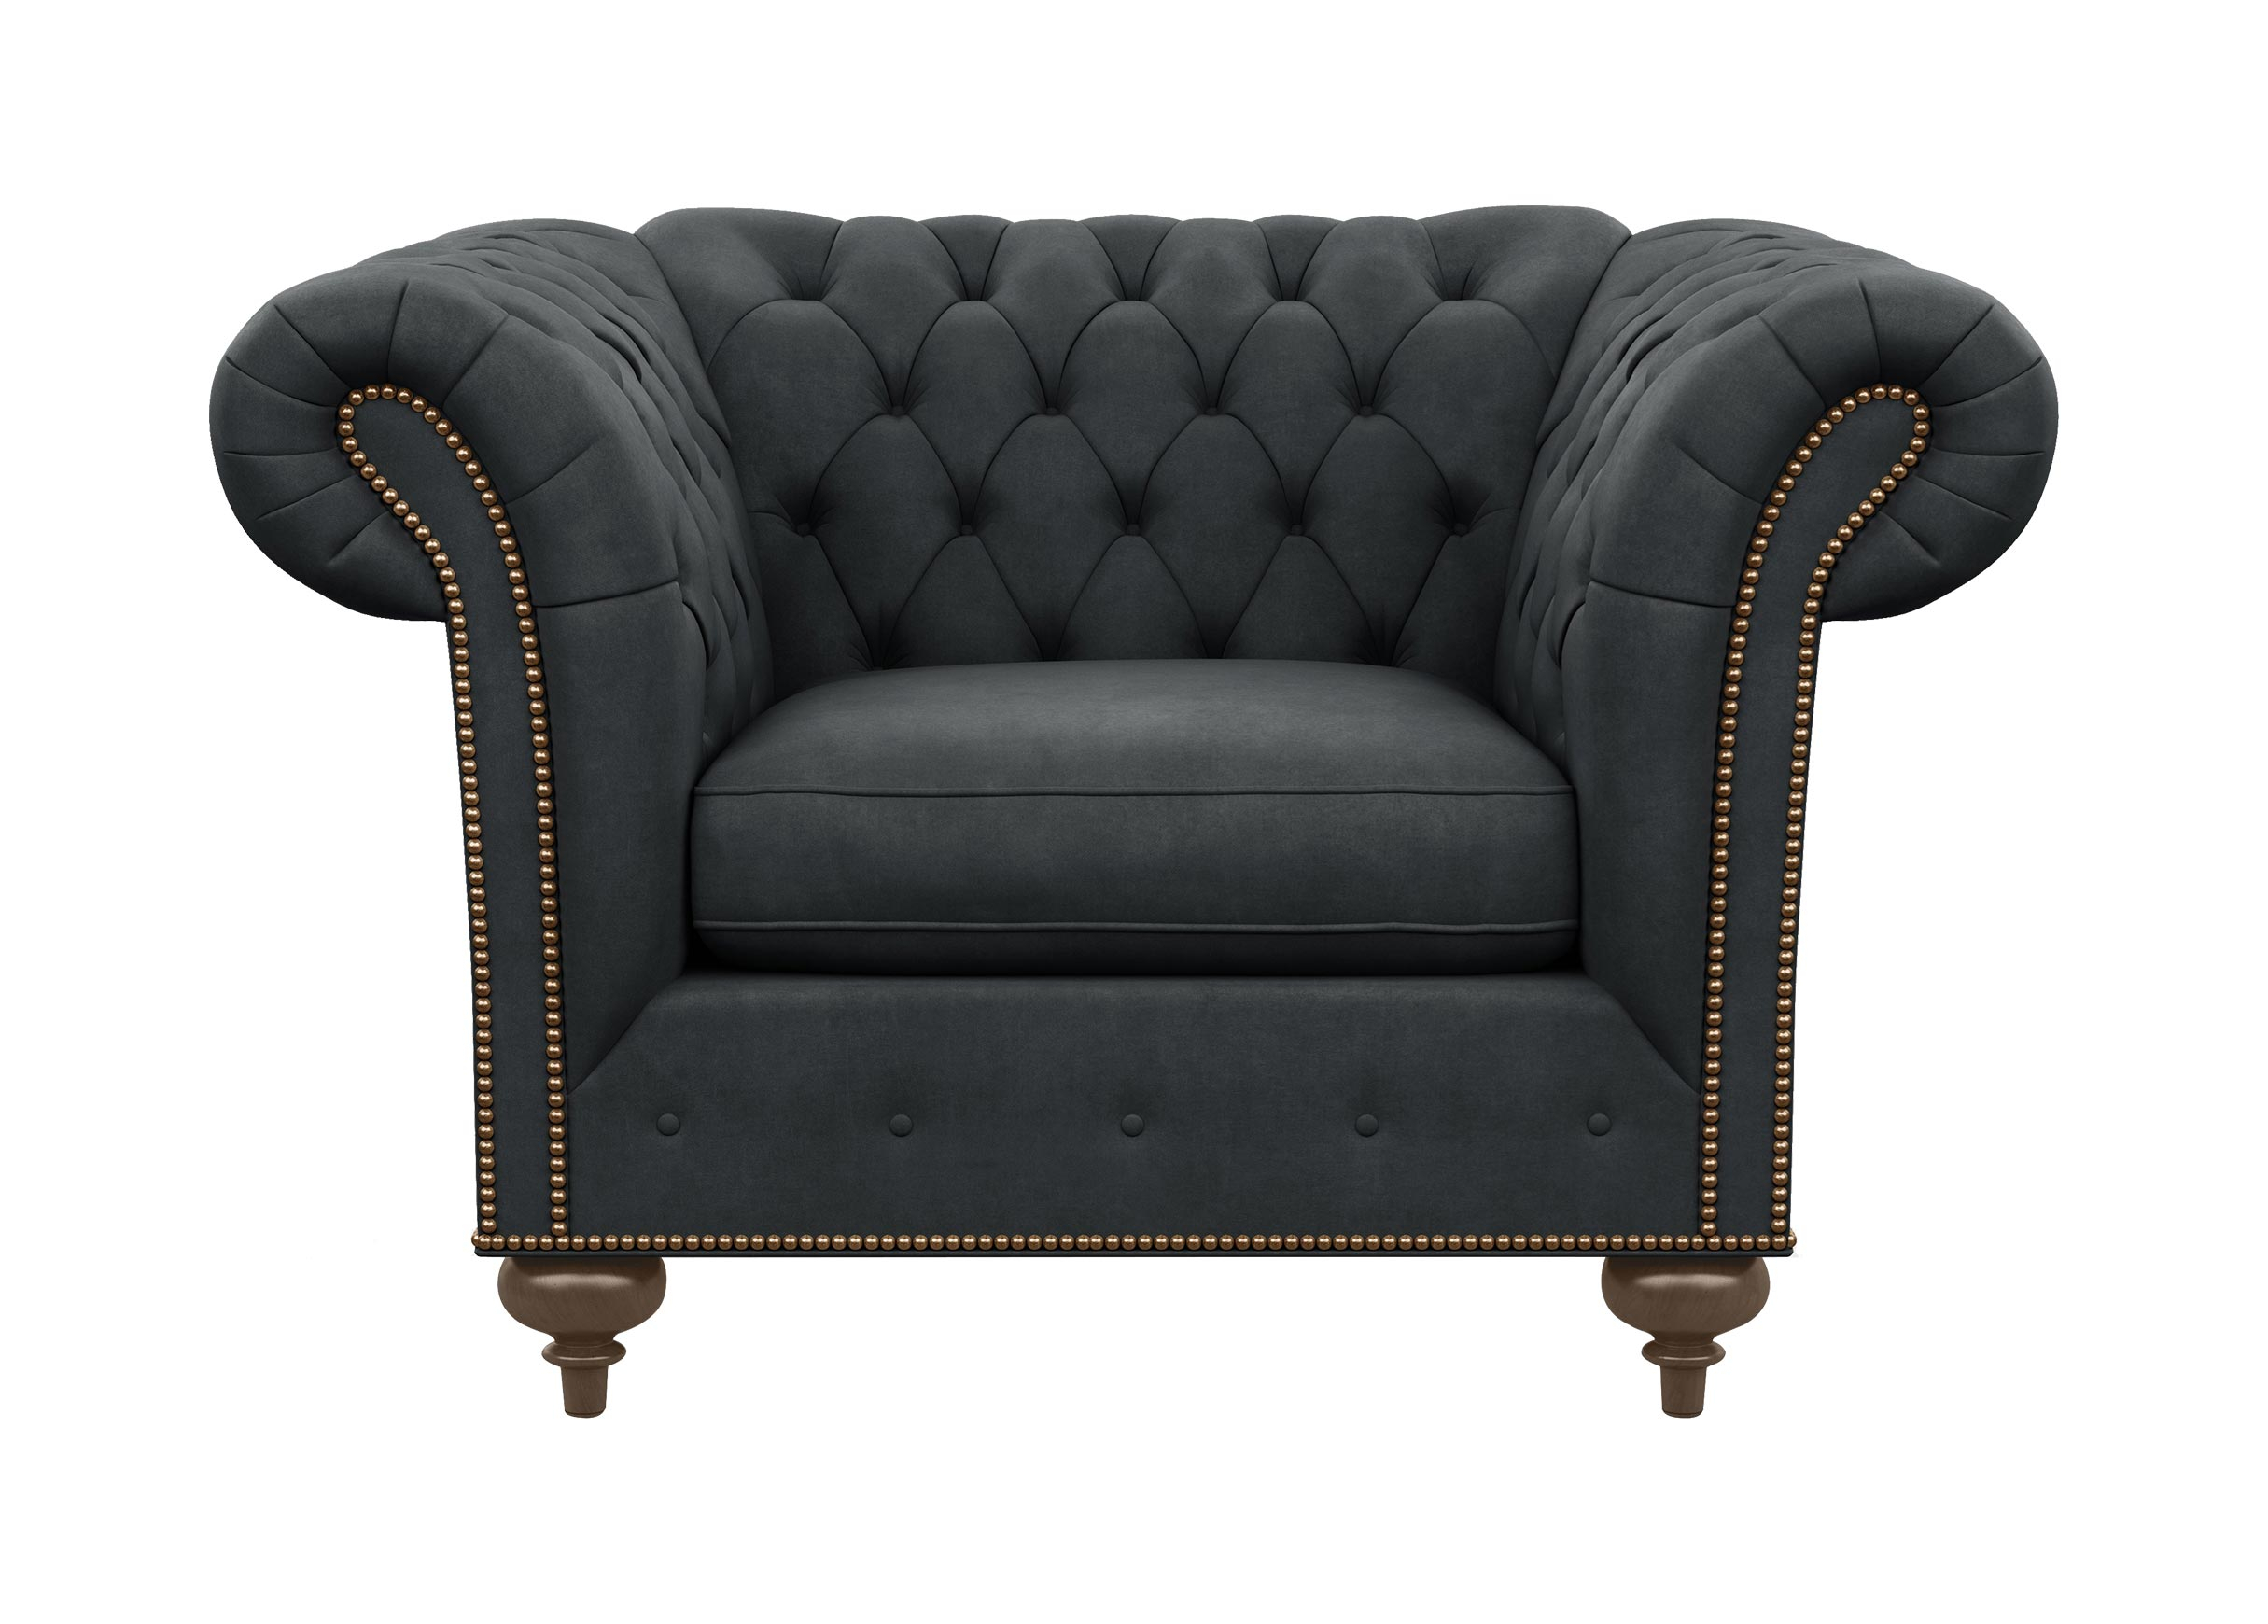 Mansfield Chair | Chairs & Chaises | Ethan Allen Inside Mansfield Graphite Velvet Sofa Chairs (Image 12 of 25)